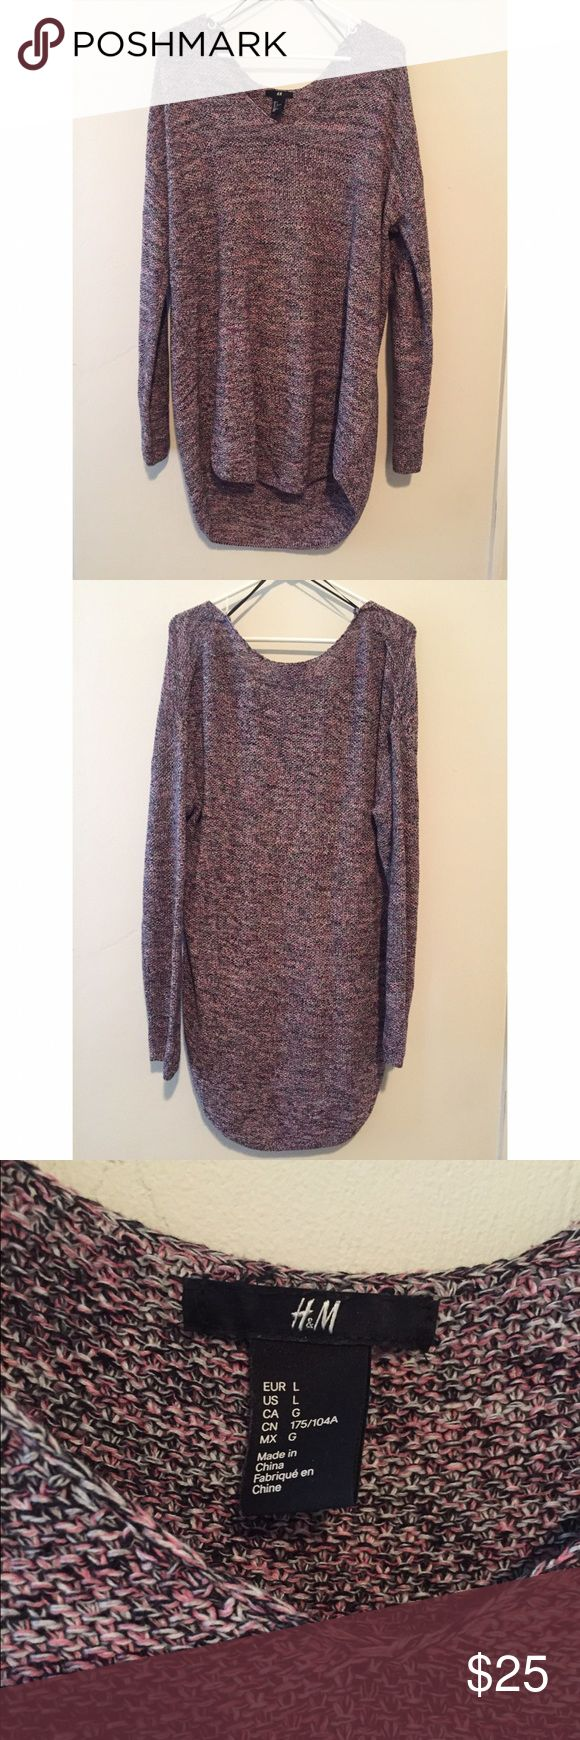 Pink & Black Oversized Sweater Dress - NWOT This H&M sweater dress is super comfortable. Great to wear with gladiator sandals or knee high boots. Or can be worn oversized with leggings! Perfect condition. H&M Dresses Long Sleeve